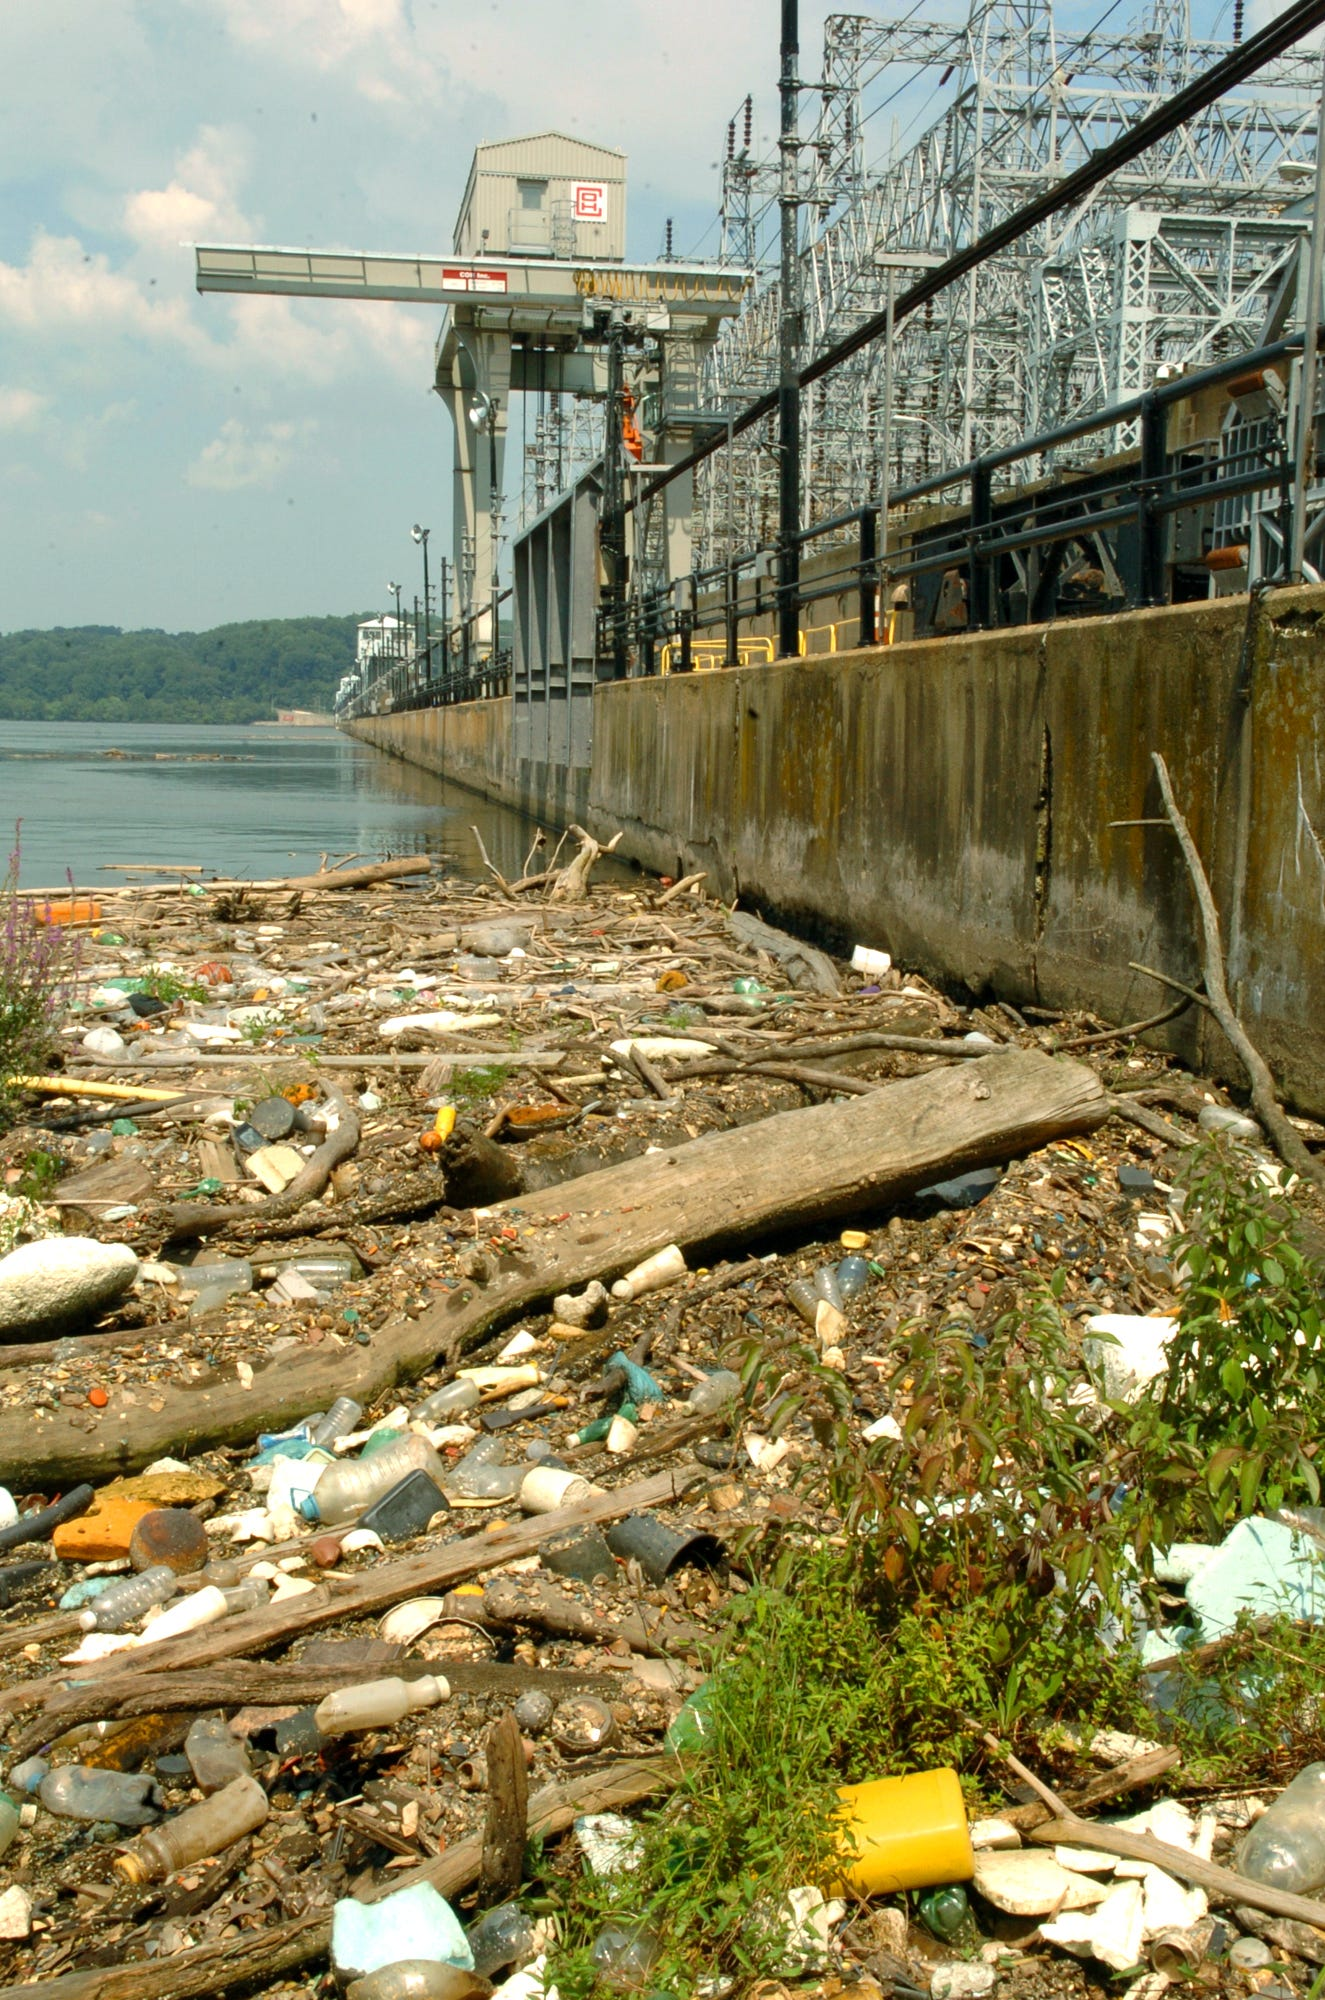 Floating debris piles up alongside the Conowingo dam on the west side of the Susquehanna River in 2009.